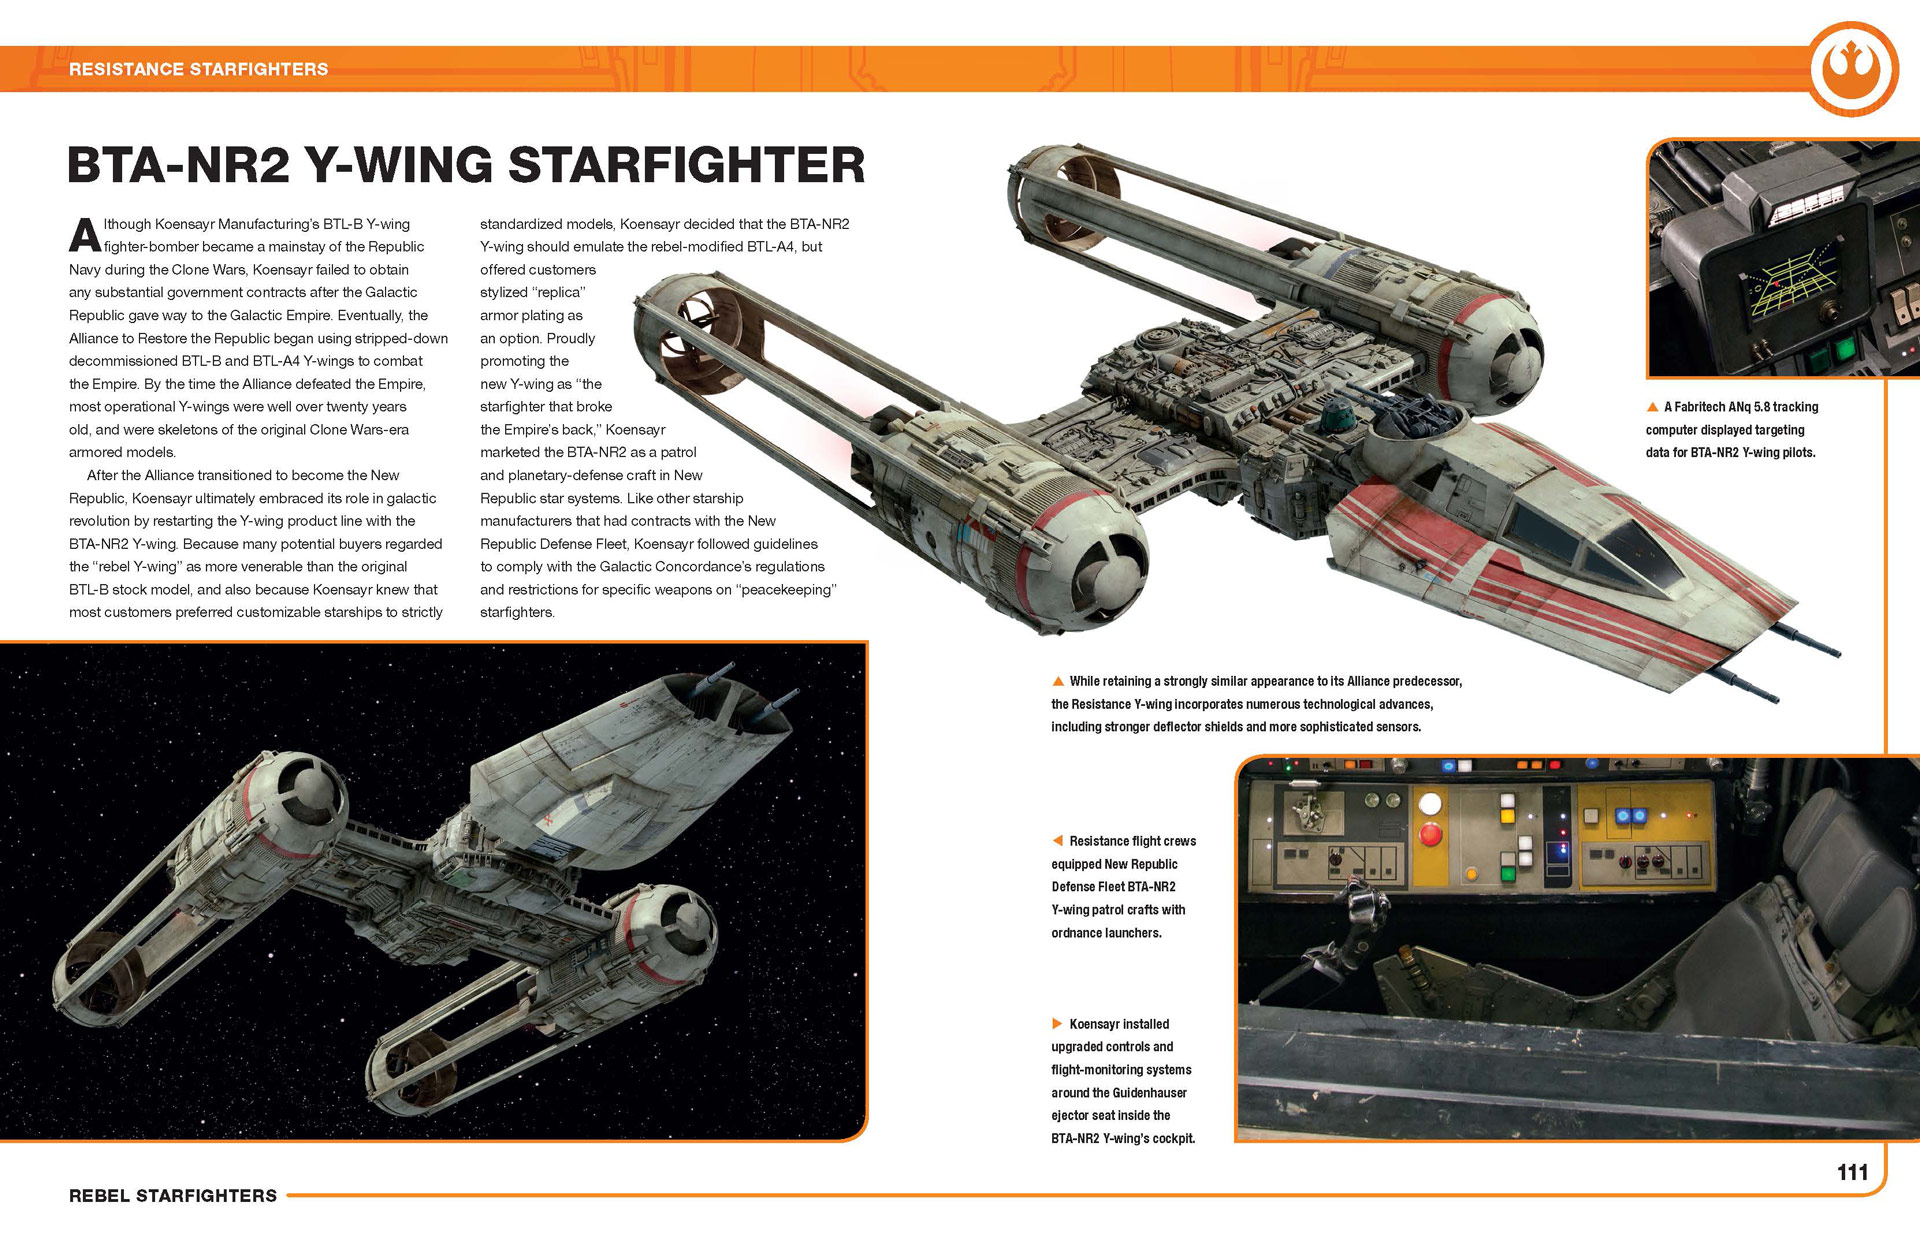 The Rise Of Skywalker The Y Wing In The Film Is Confirmed To Be An Upgraded Model